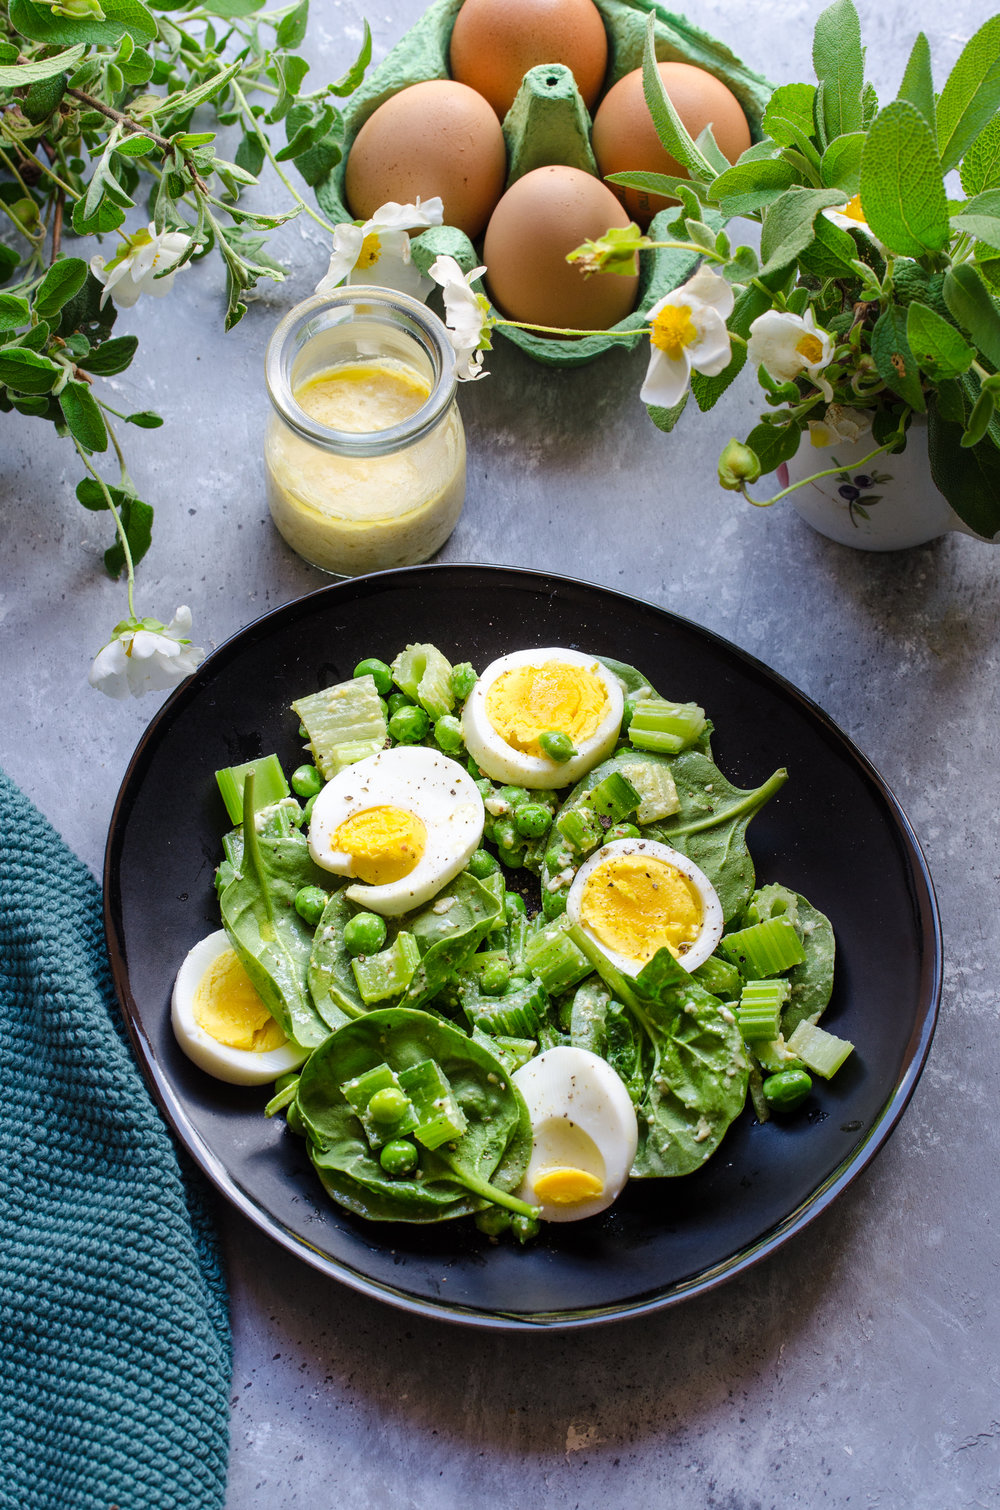 Pea celery baby spinach salad with boilded eggs.jpg